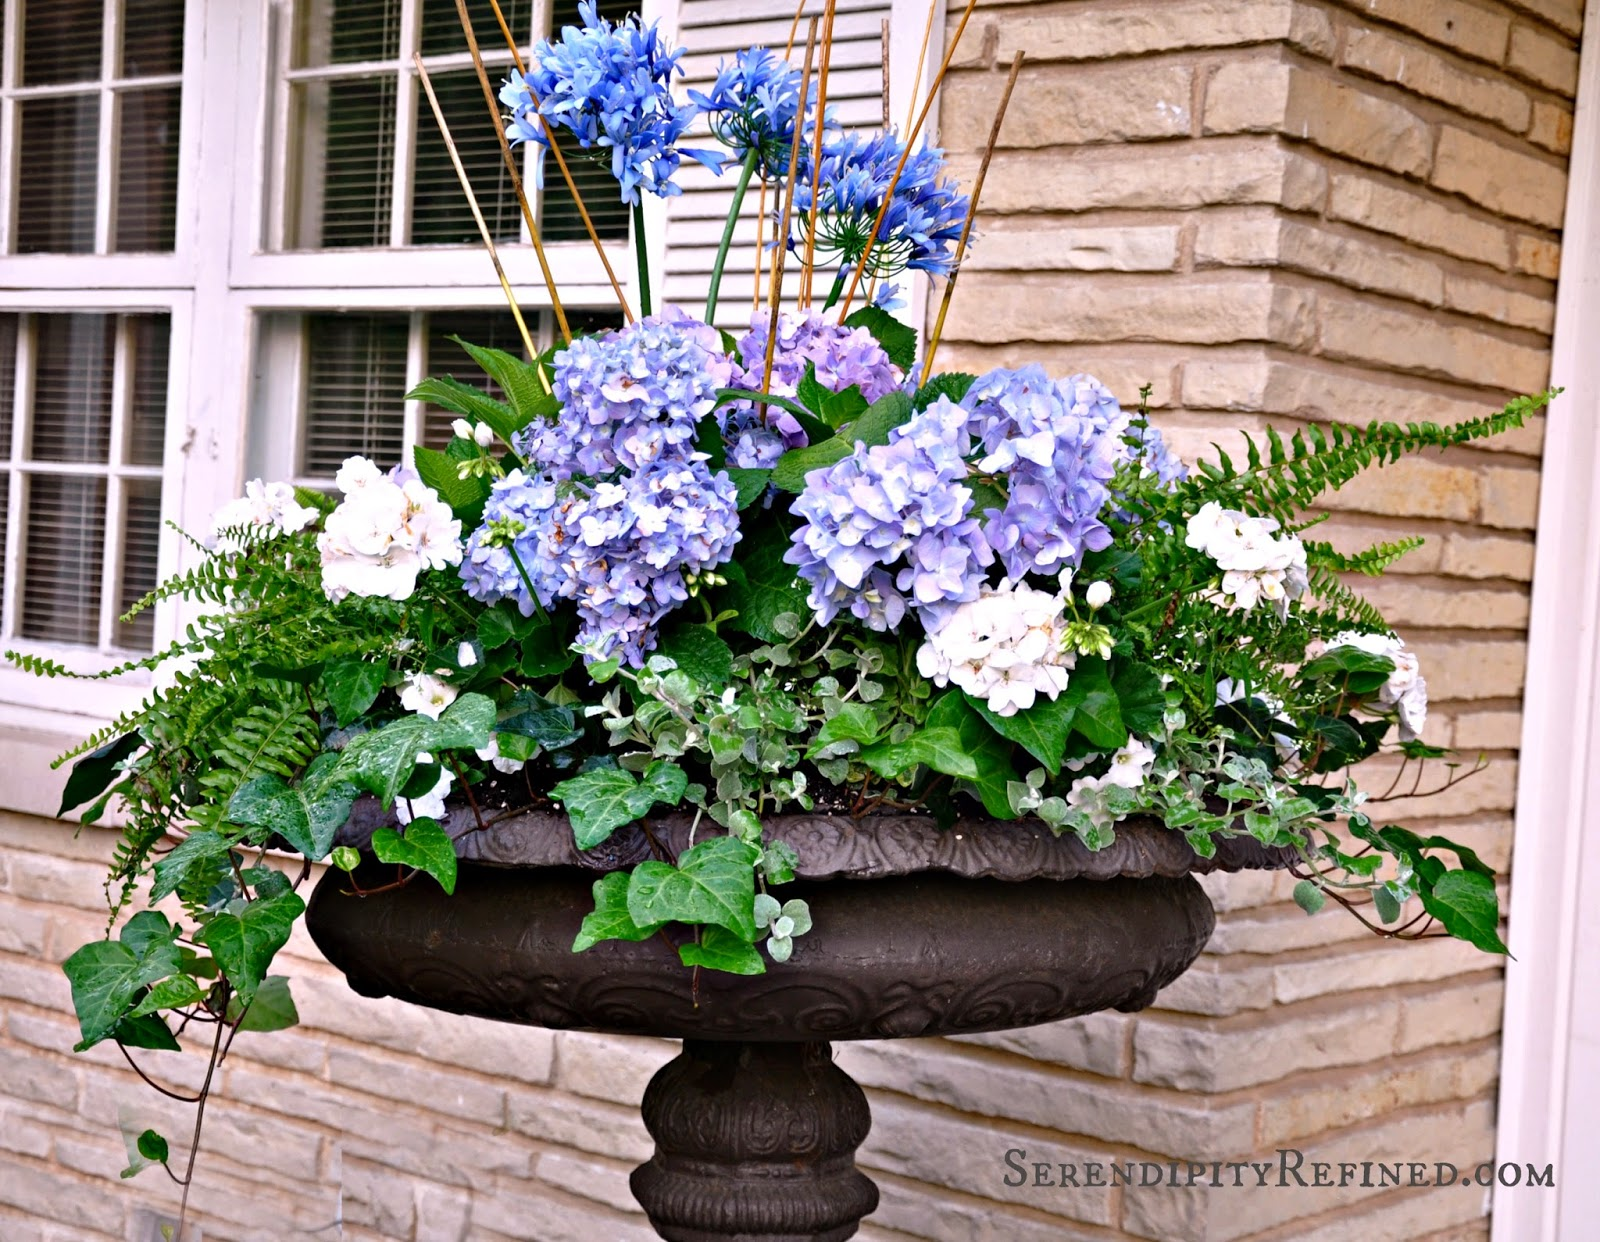 Serendipity Refined Blog: Blue And White Outdoor Summer